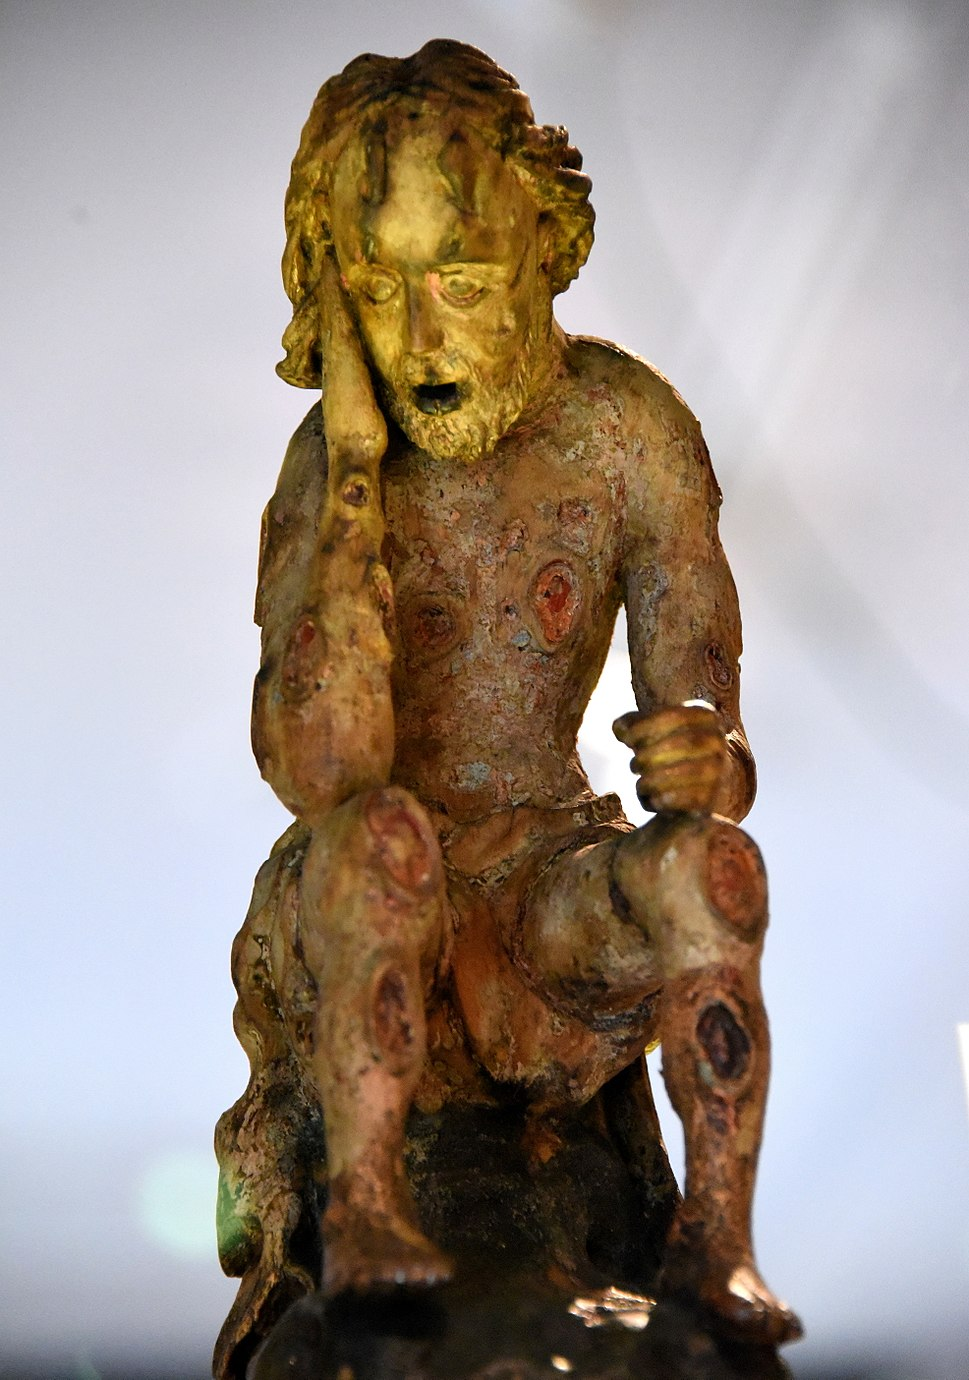 Carved wooden figure of Job. Probably from Germany, 1750-1850 CE. The Wellcome Collection, London